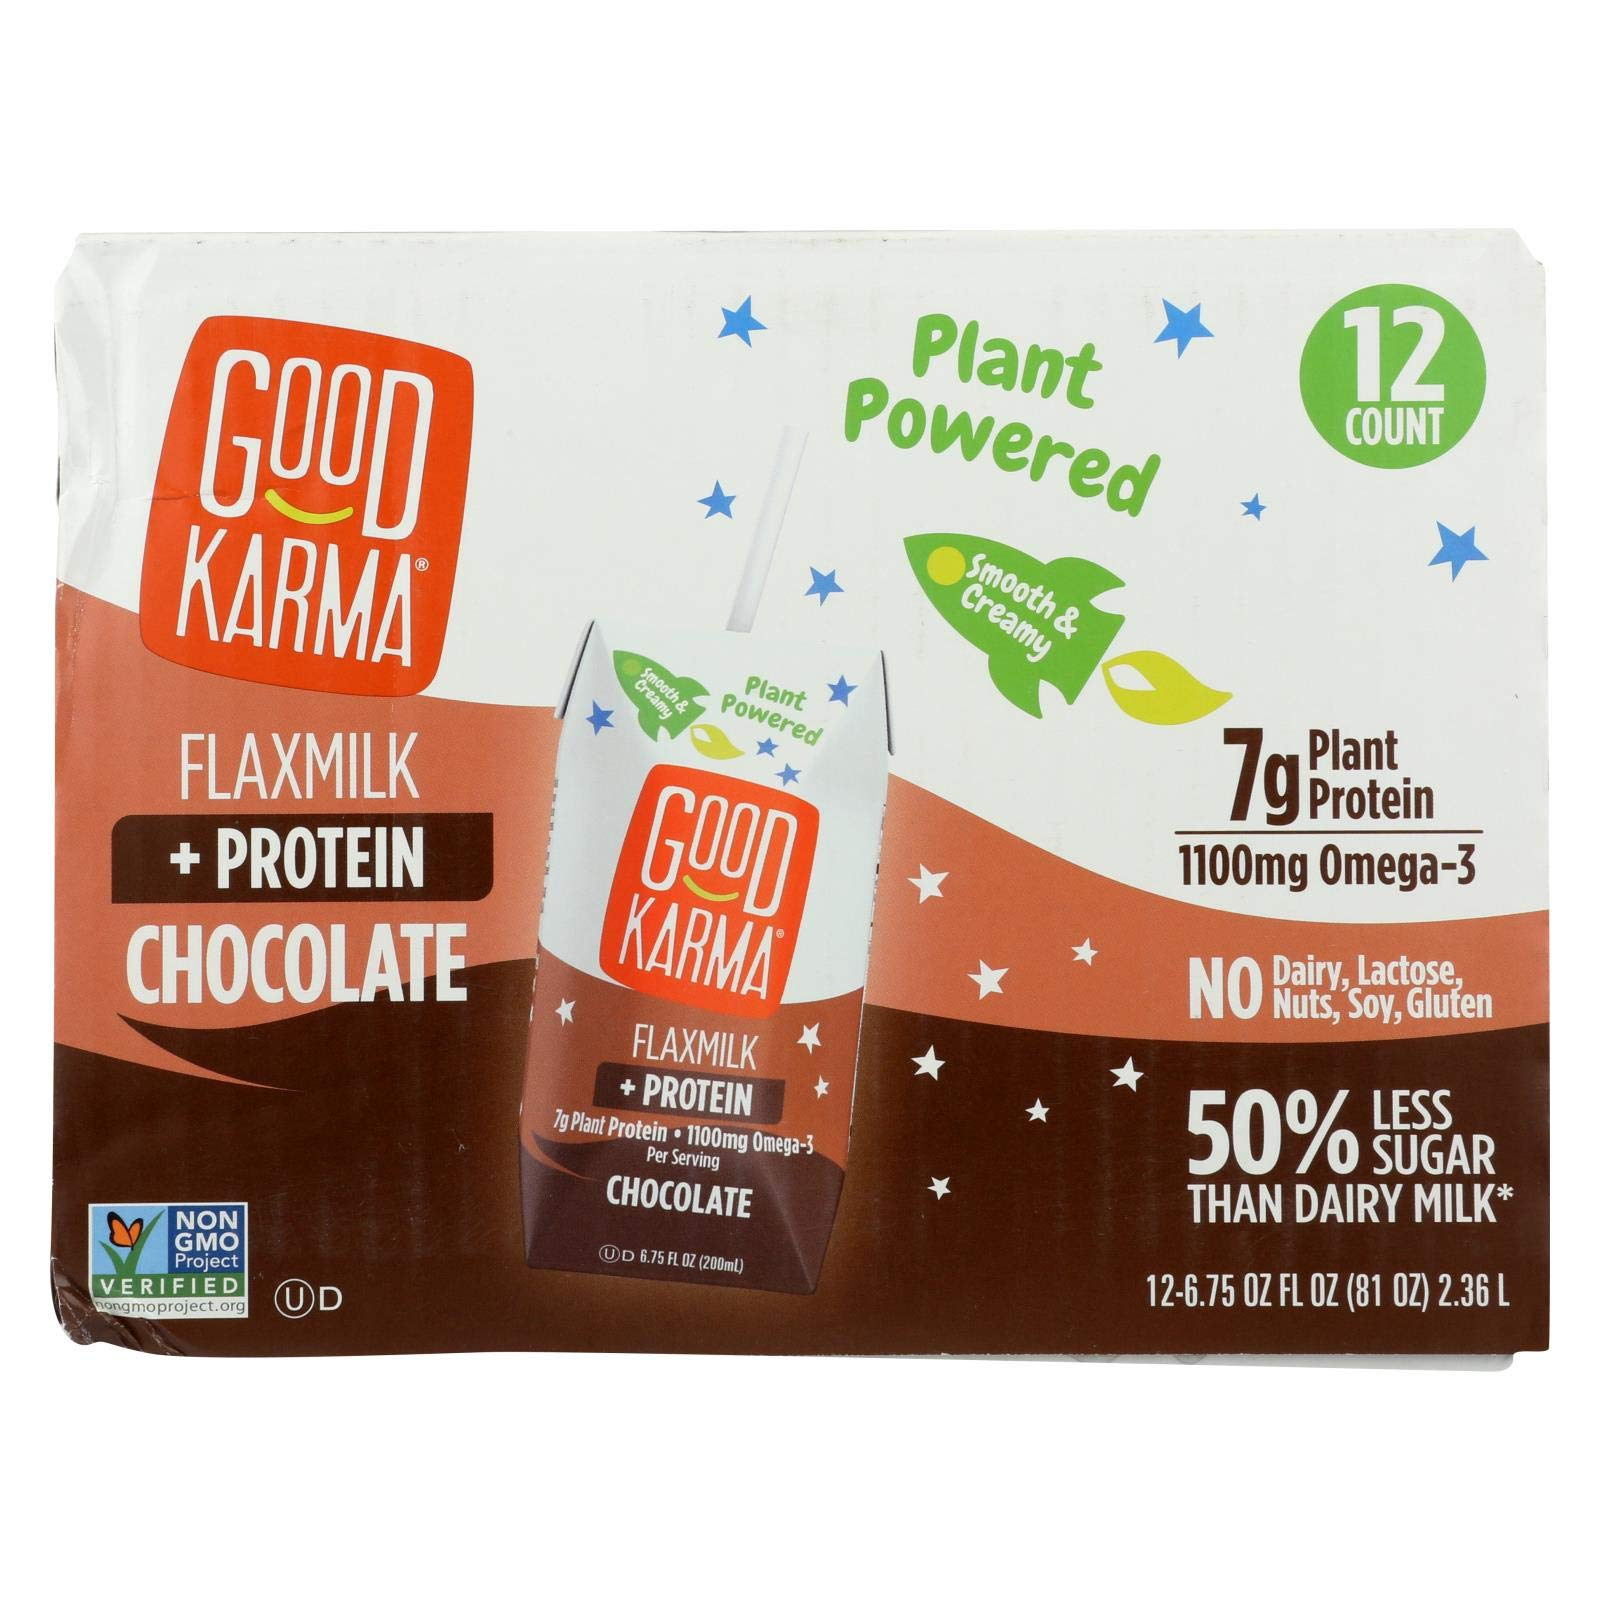 GOOD KARMA, FLAX MILK, PROTEIN, CHOCOLT, Pack of 1, Size 12/6.75F - No Artificial Ingredients Dairy Free Gluten Free Low Sodium Vegan